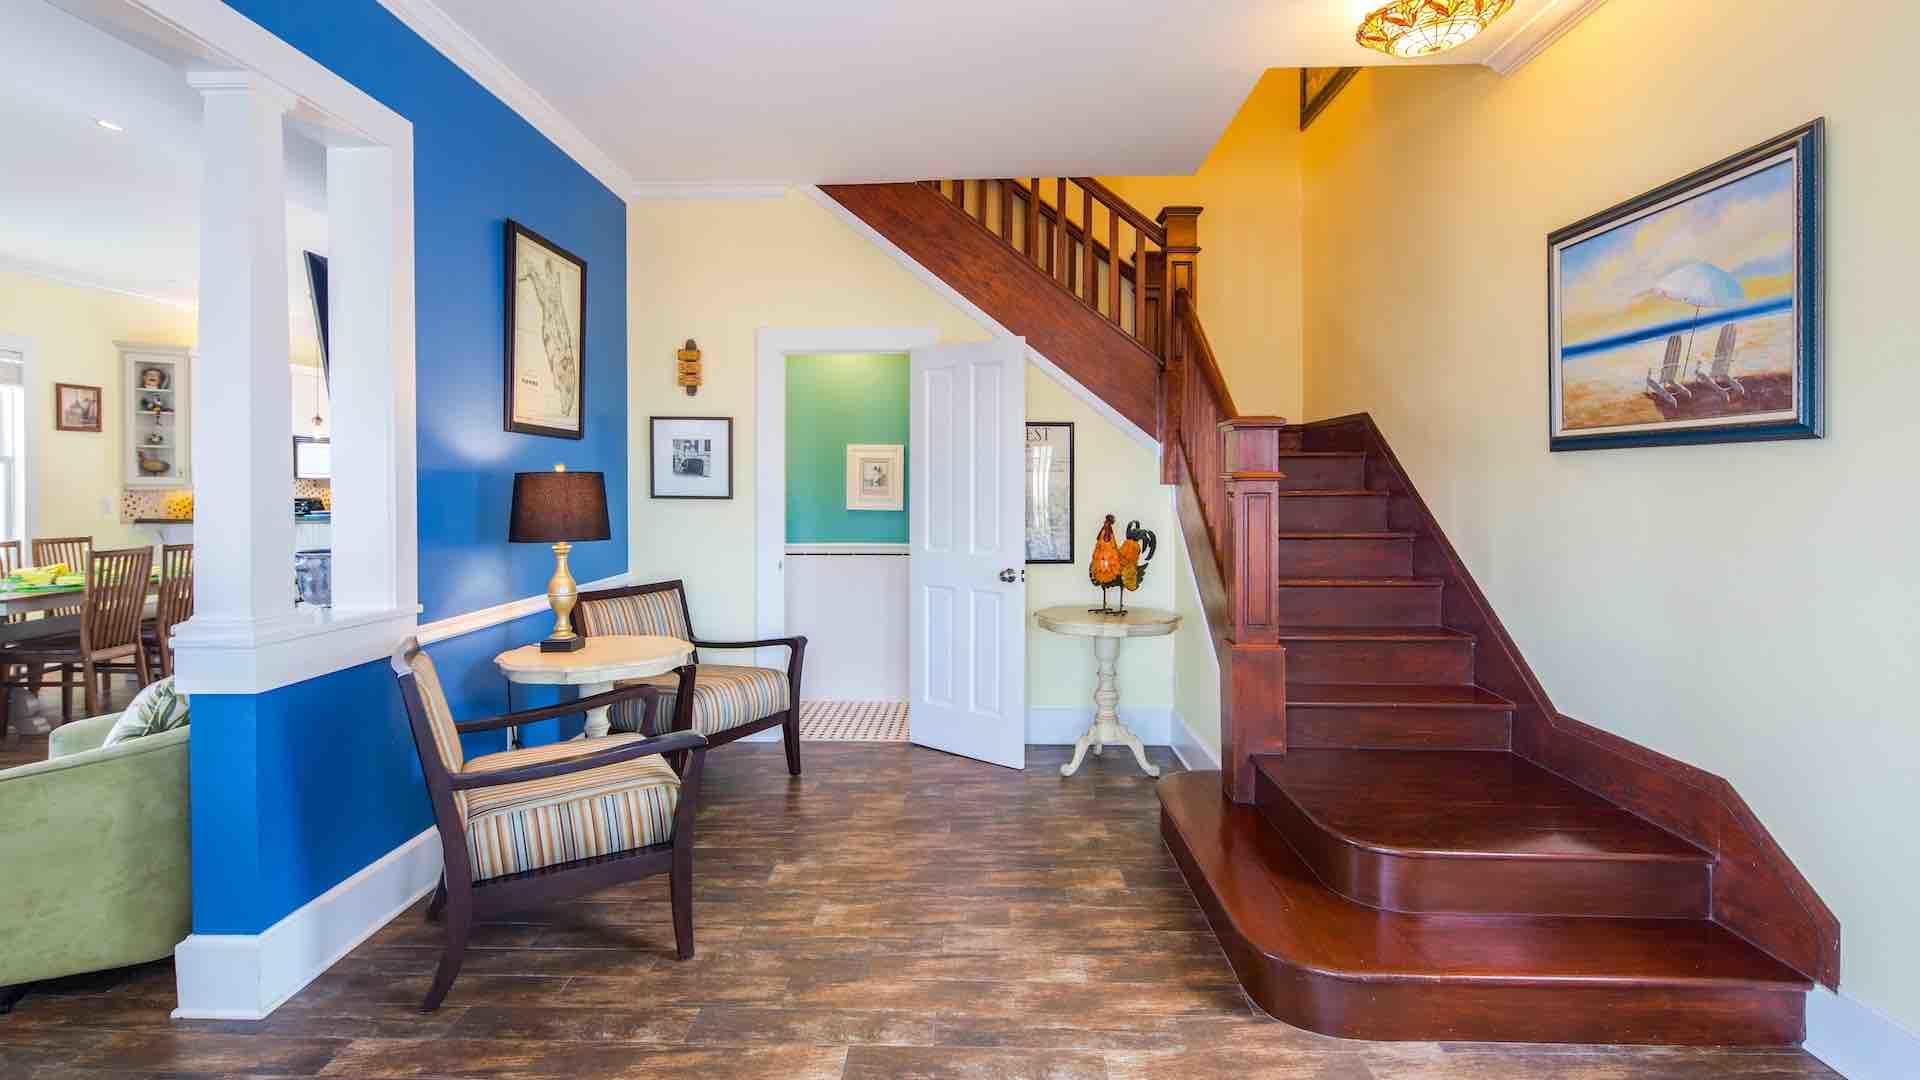 The front foyer opens up to the living room and has stairs up to the second floor...